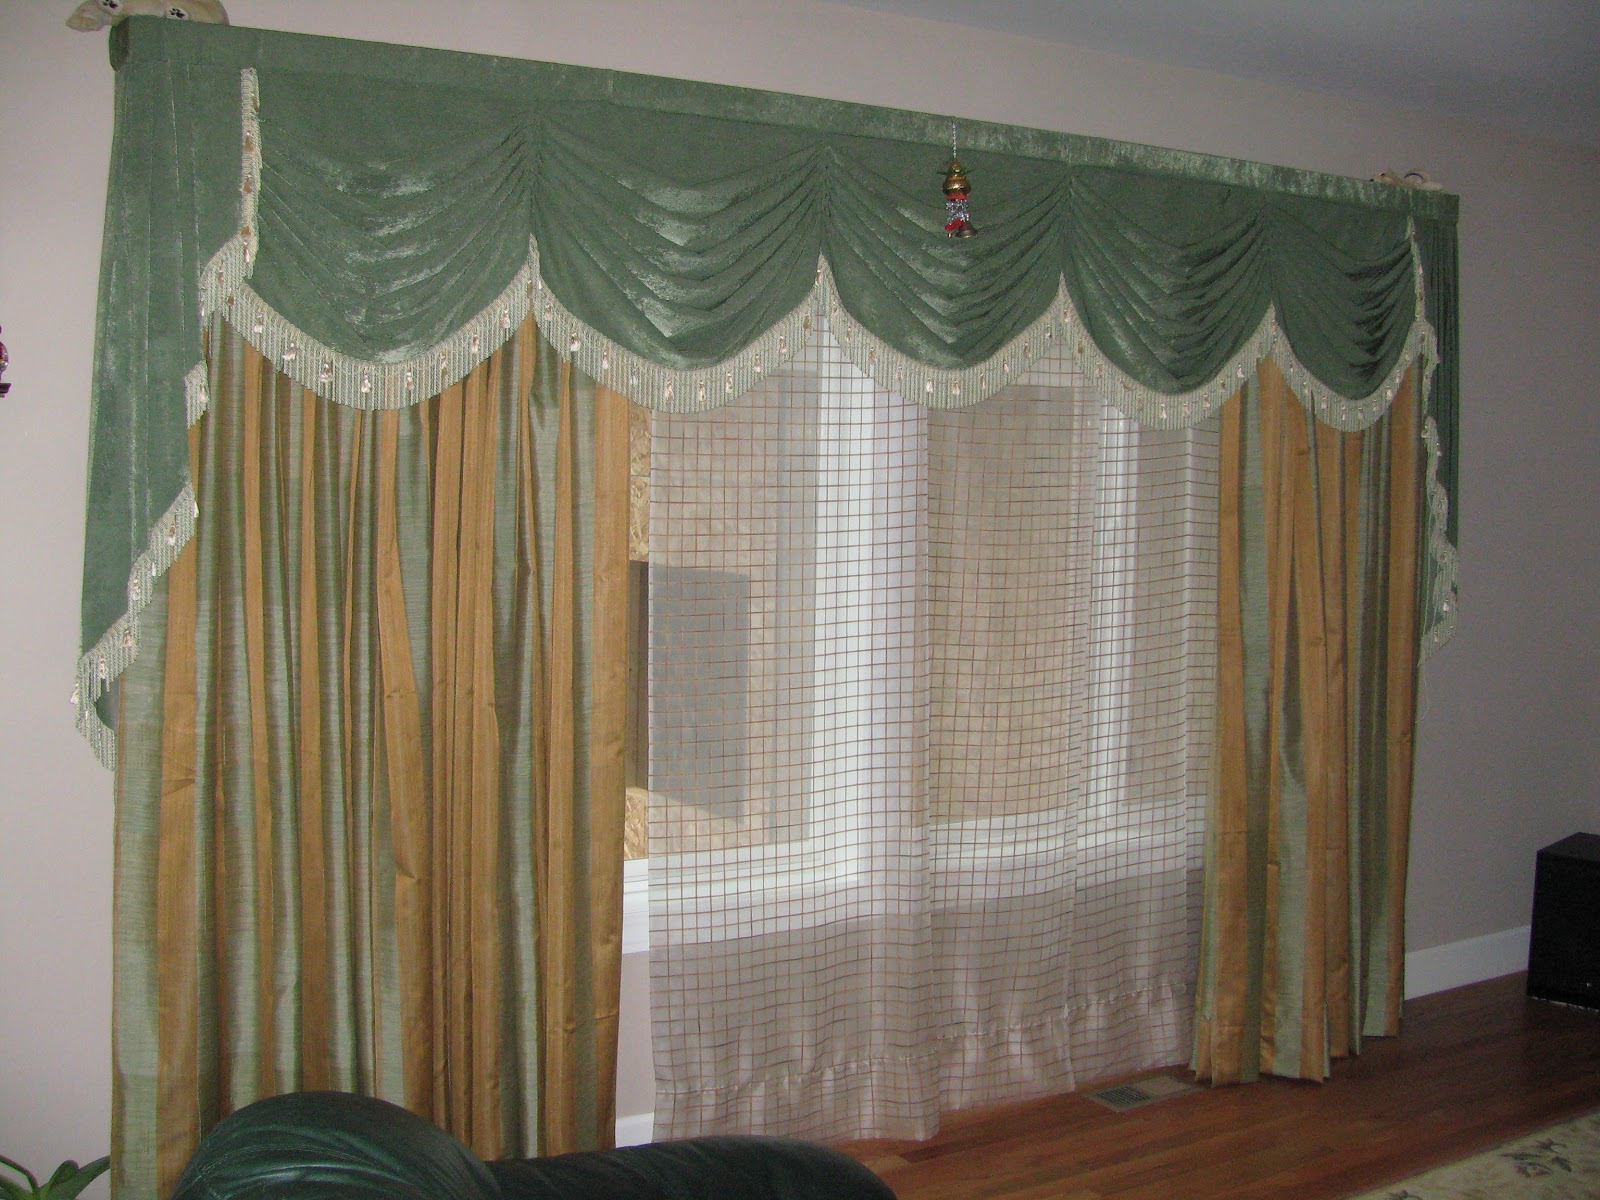 Curtain Patterns by Pate-Meadows Designs - Curtain Patterns and